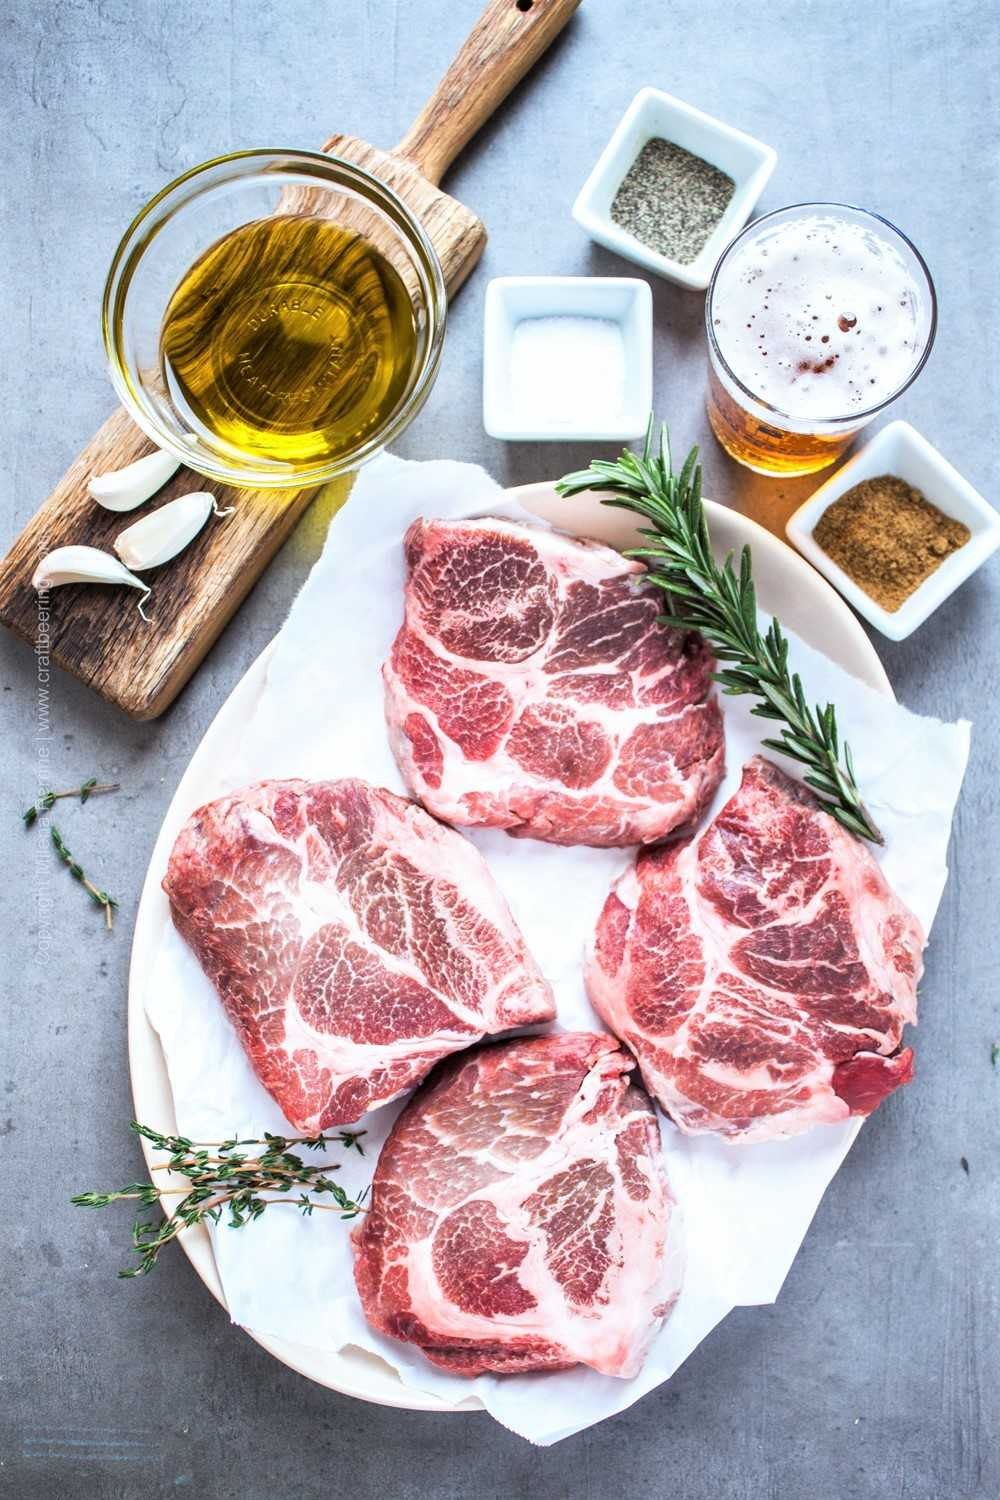 Raw pork neck chops and ingredients for pan searing.